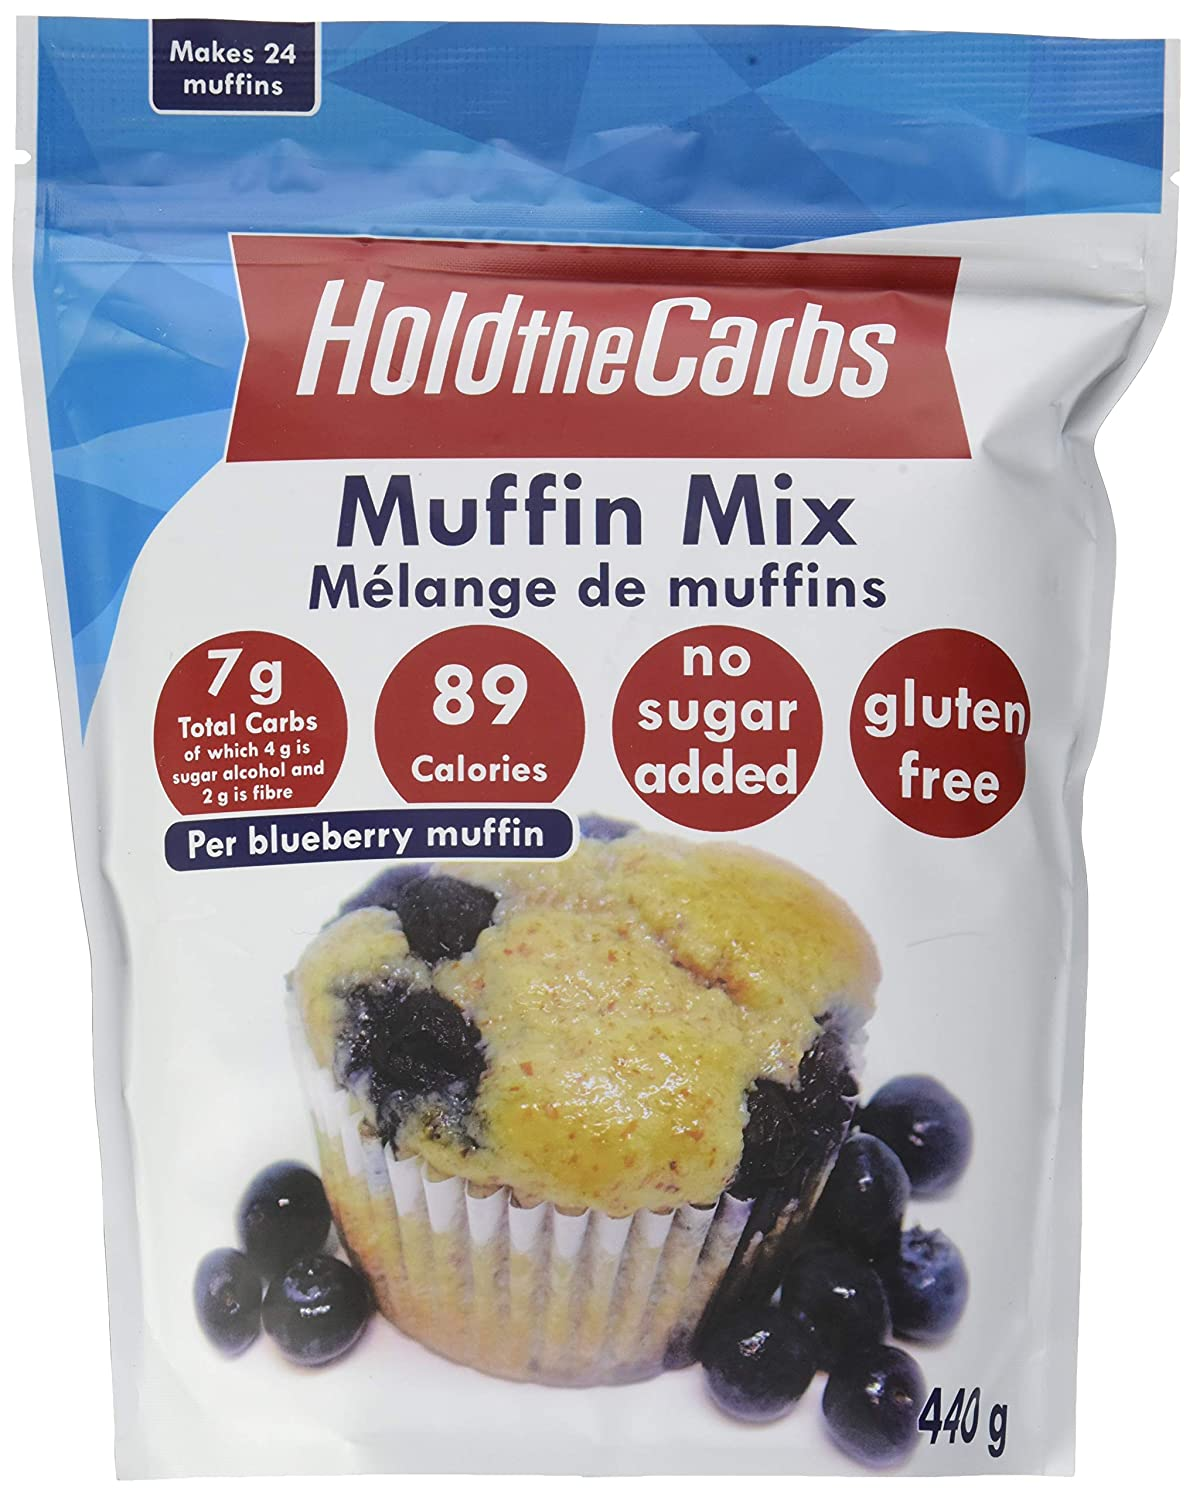 Hold Be super welcome the Carbs Muffin Mix 440 In a popularity GR